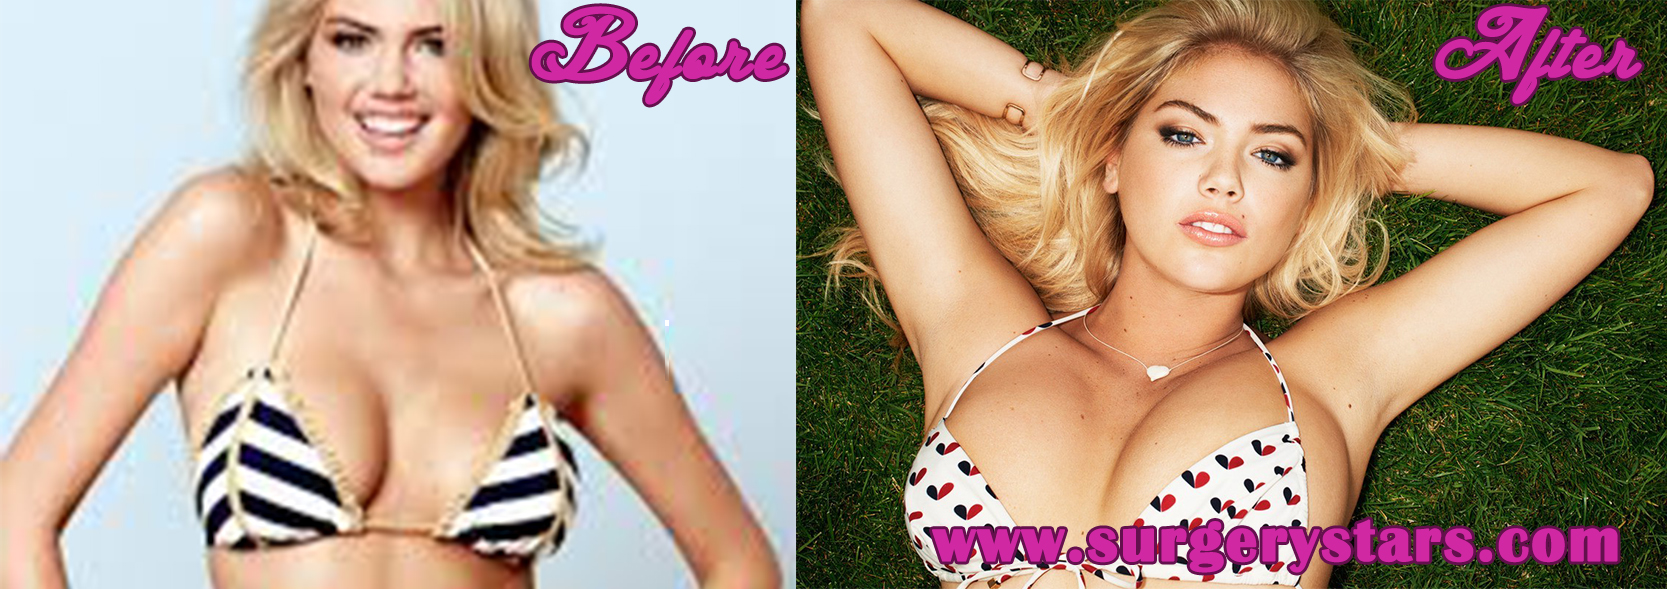 Kate upton breast enhancement